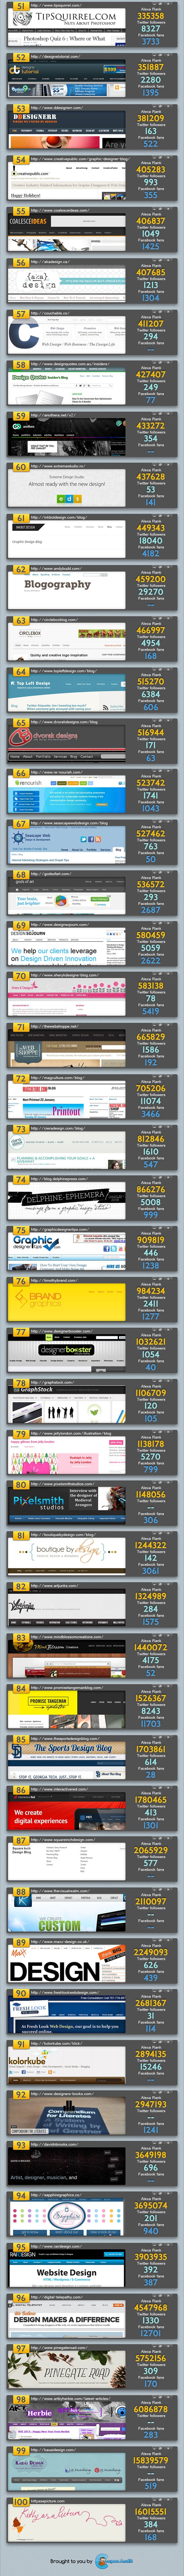 Top 100 Web Design Blogs For 2013 Infographic